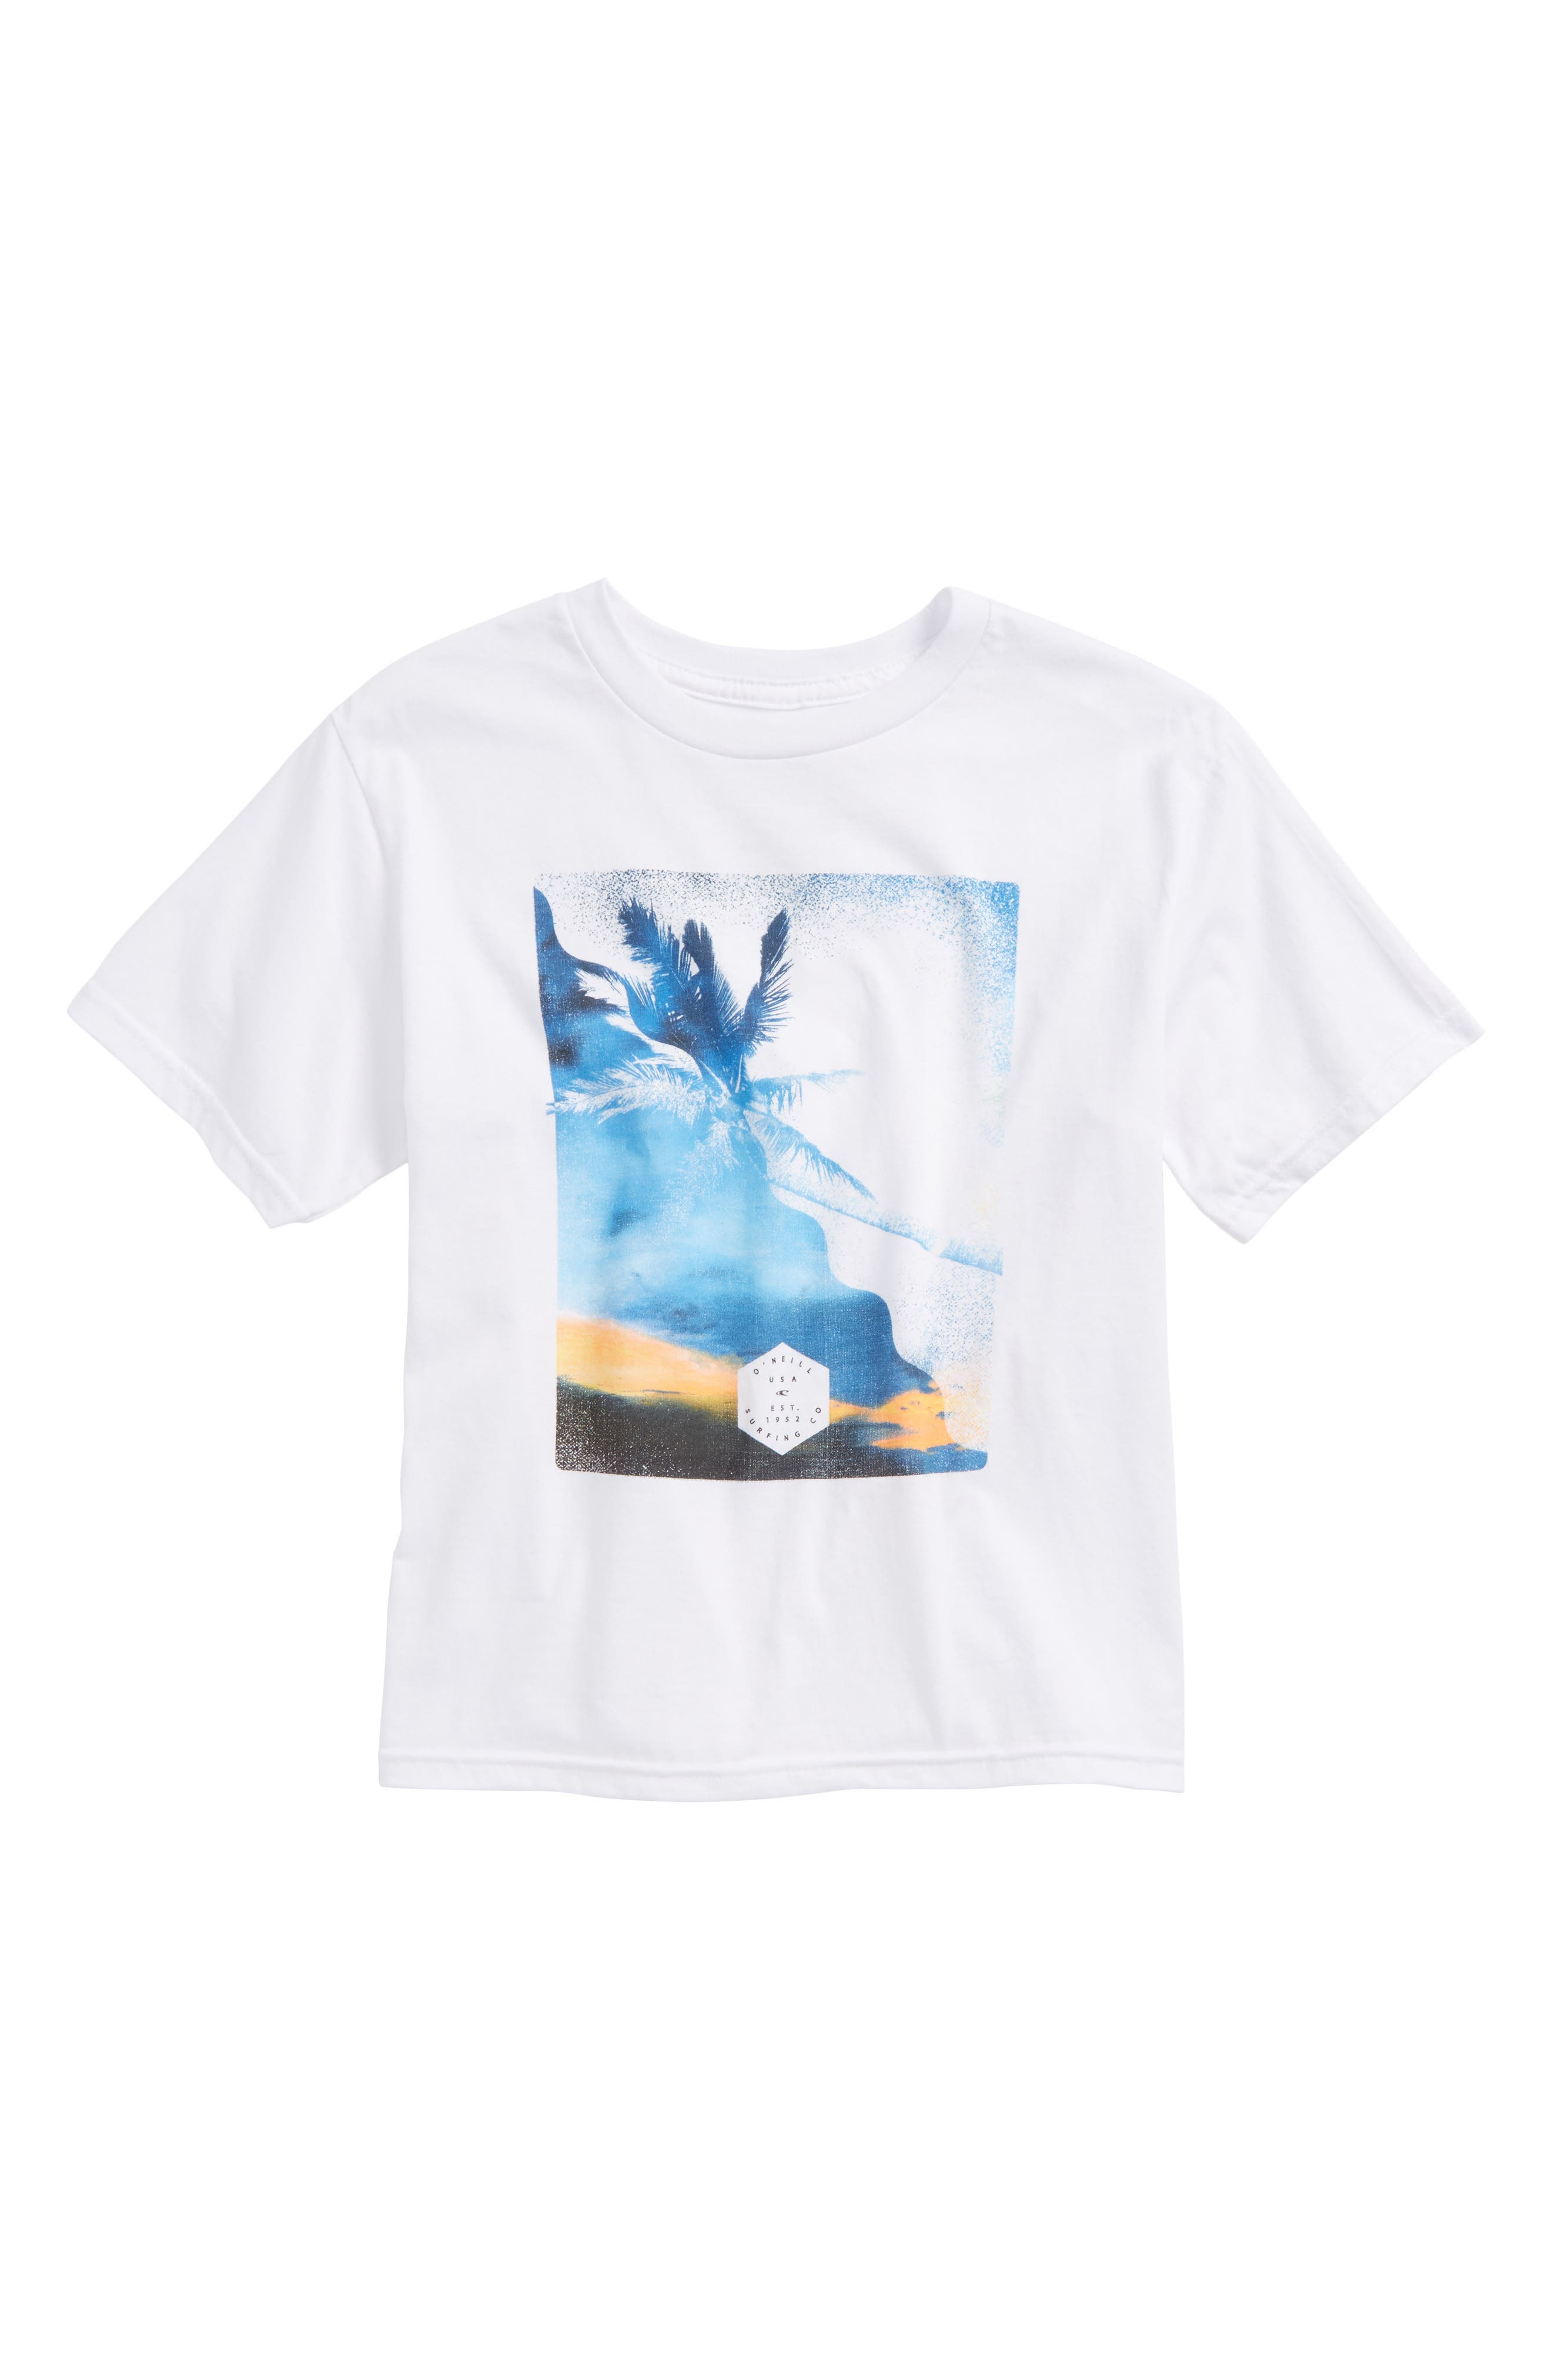 Canopy Graphic T-Shirt,                             Main thumbnail 1, color,                             White